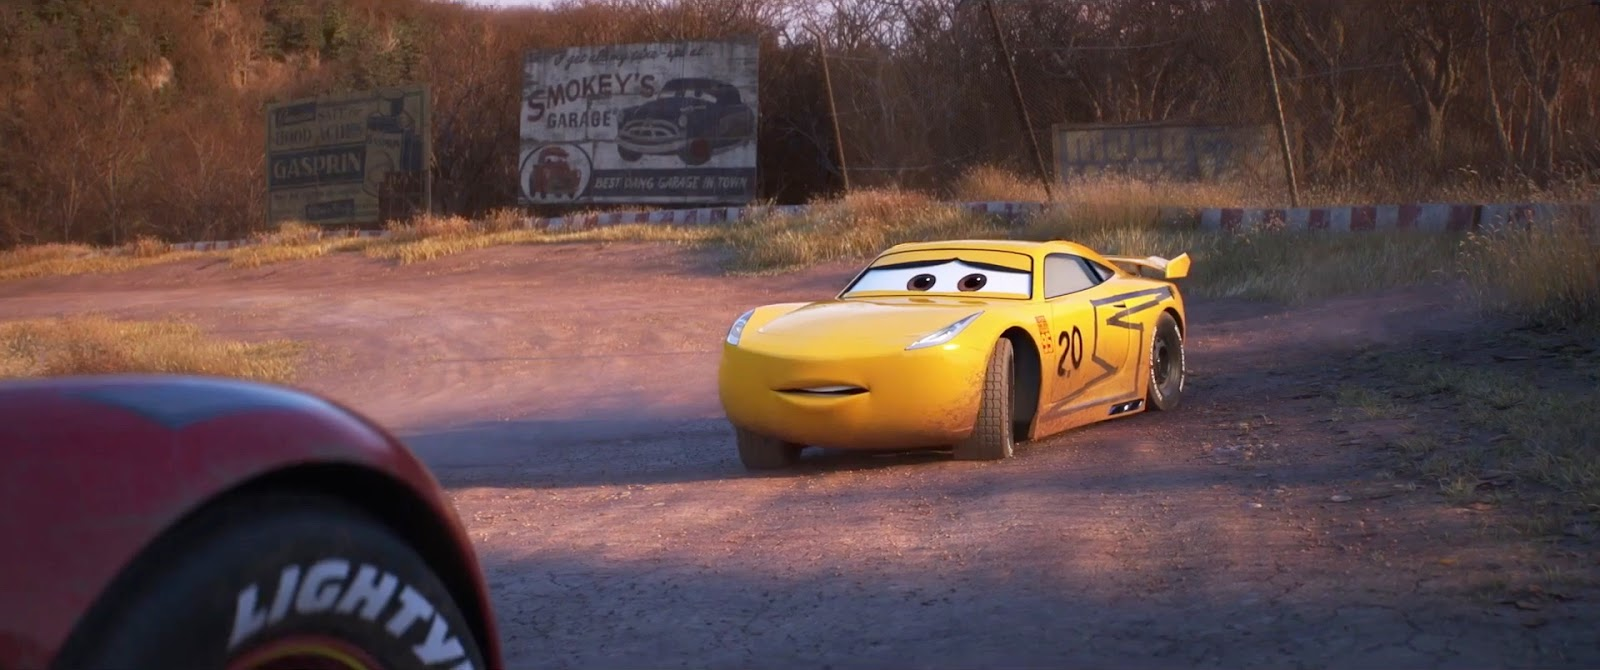 Cars 3 Japanese Trailer Features Exciting New Footage